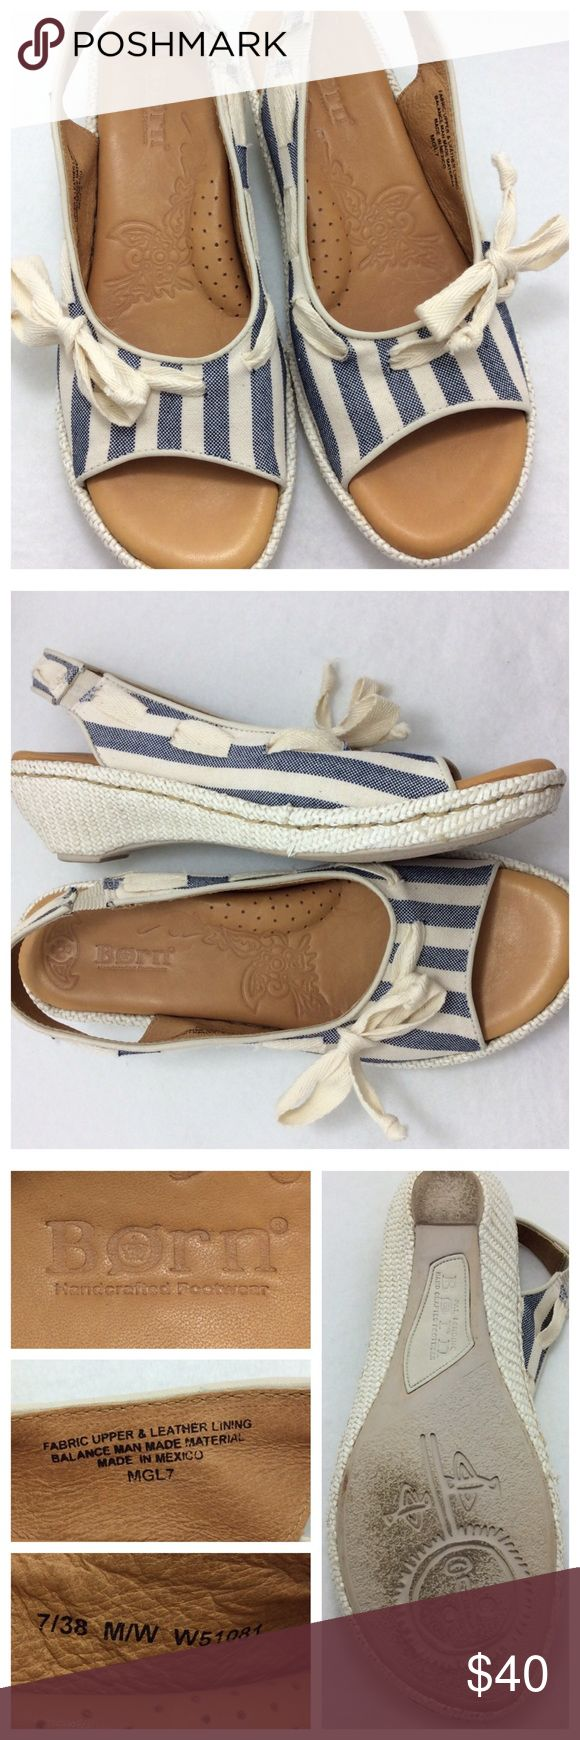 """Born Striped Open Toe Slingback Sandals Perfect for summer, these striped fabric open toe sandals have leather lining and cute front bow embellishment. Sling back and 1.75"""" kitten heel. Excellent condition Born Shoes Sandals"""